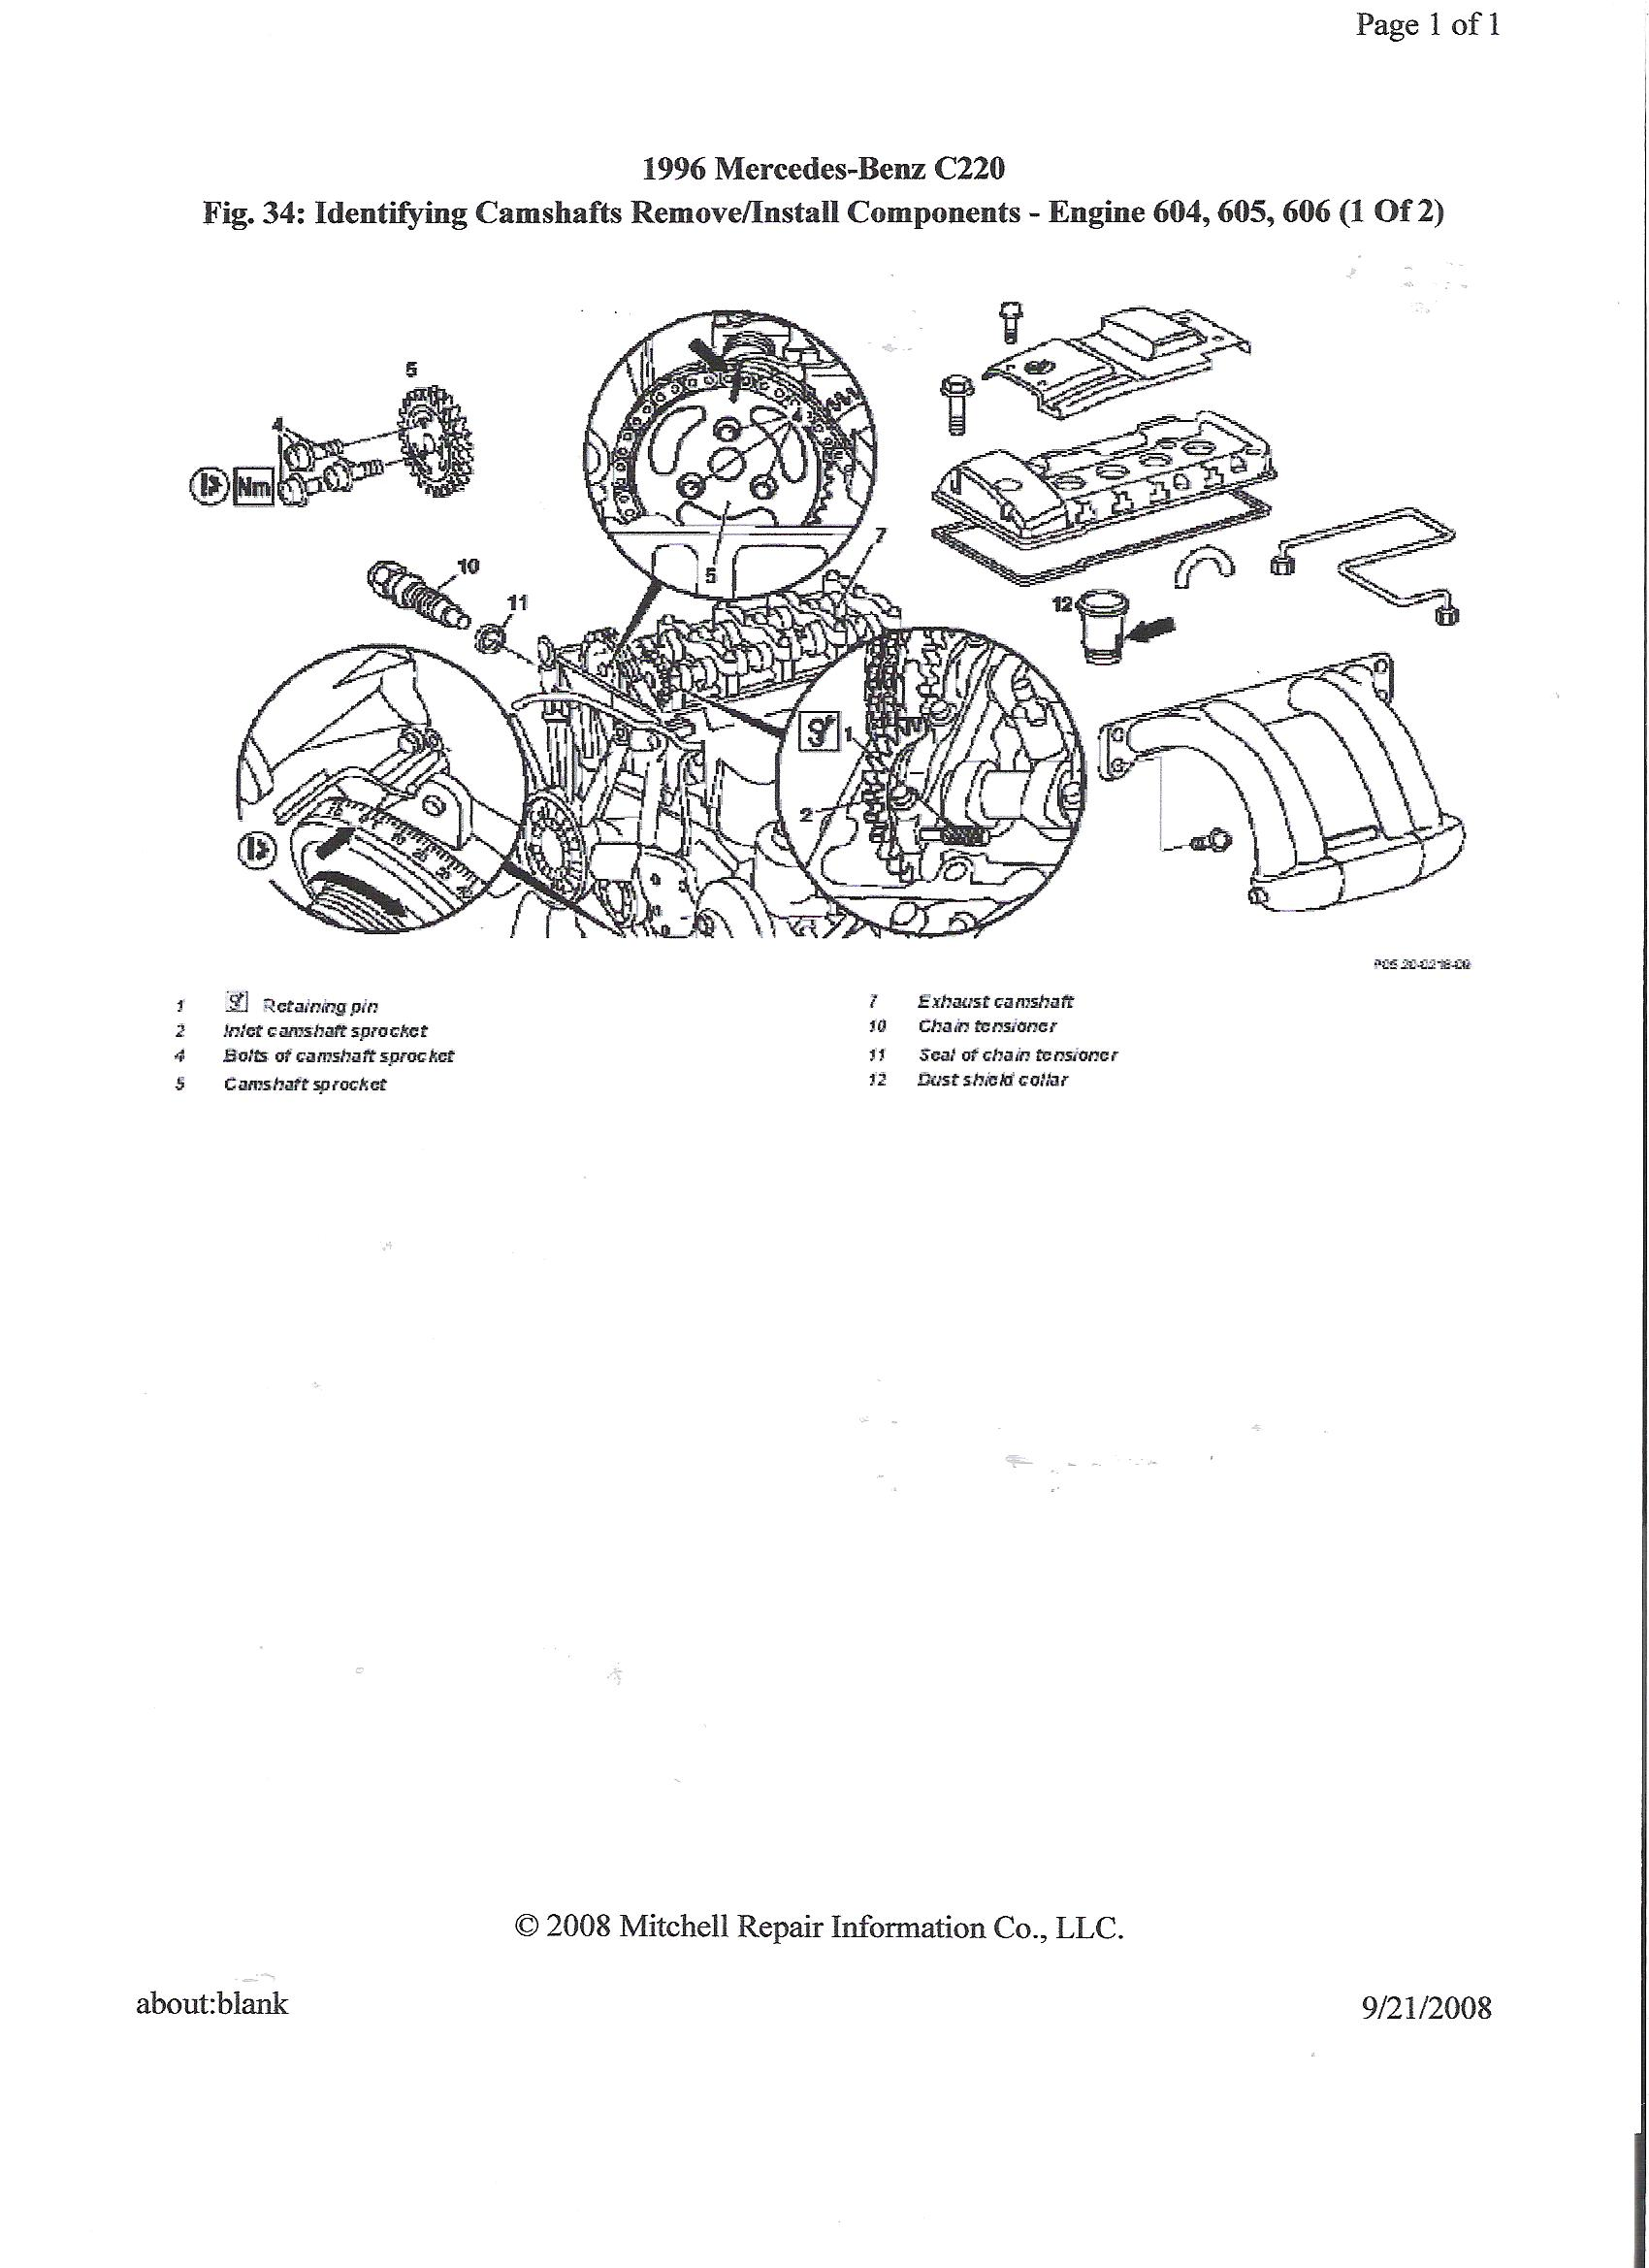 Engine Cylinder Diagram I Need To Know Where Are The Timing Marks At On 96 Mercedes C220 Ok Sorry Proceedures Basically Same For 6 And4 Cyl Engines Am Sending You 4 Diagrams Thanks Joe